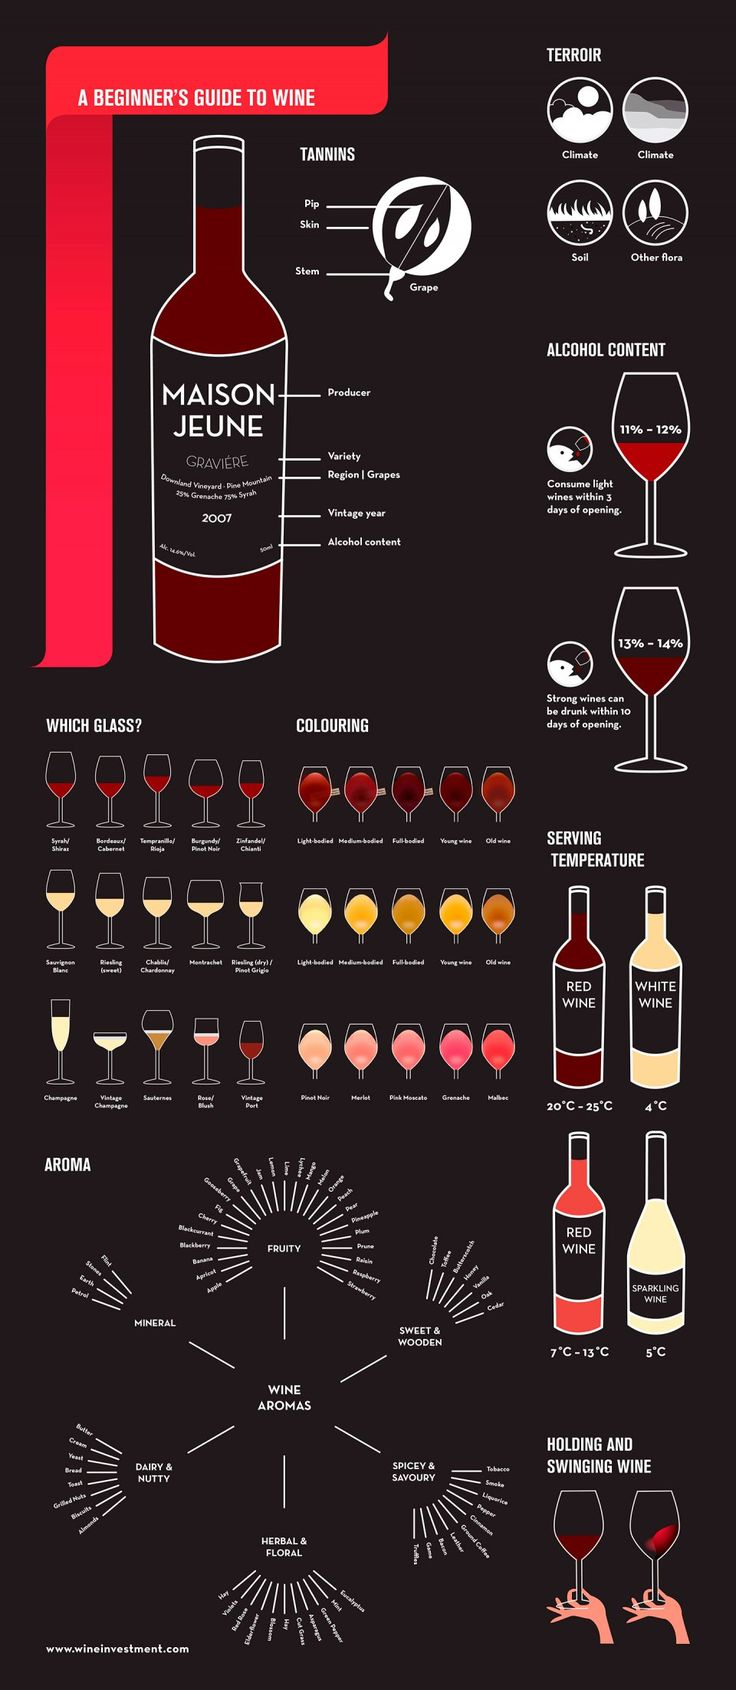 beginner's guide to wine infographic For more wine education visit www.crystalpalate.com